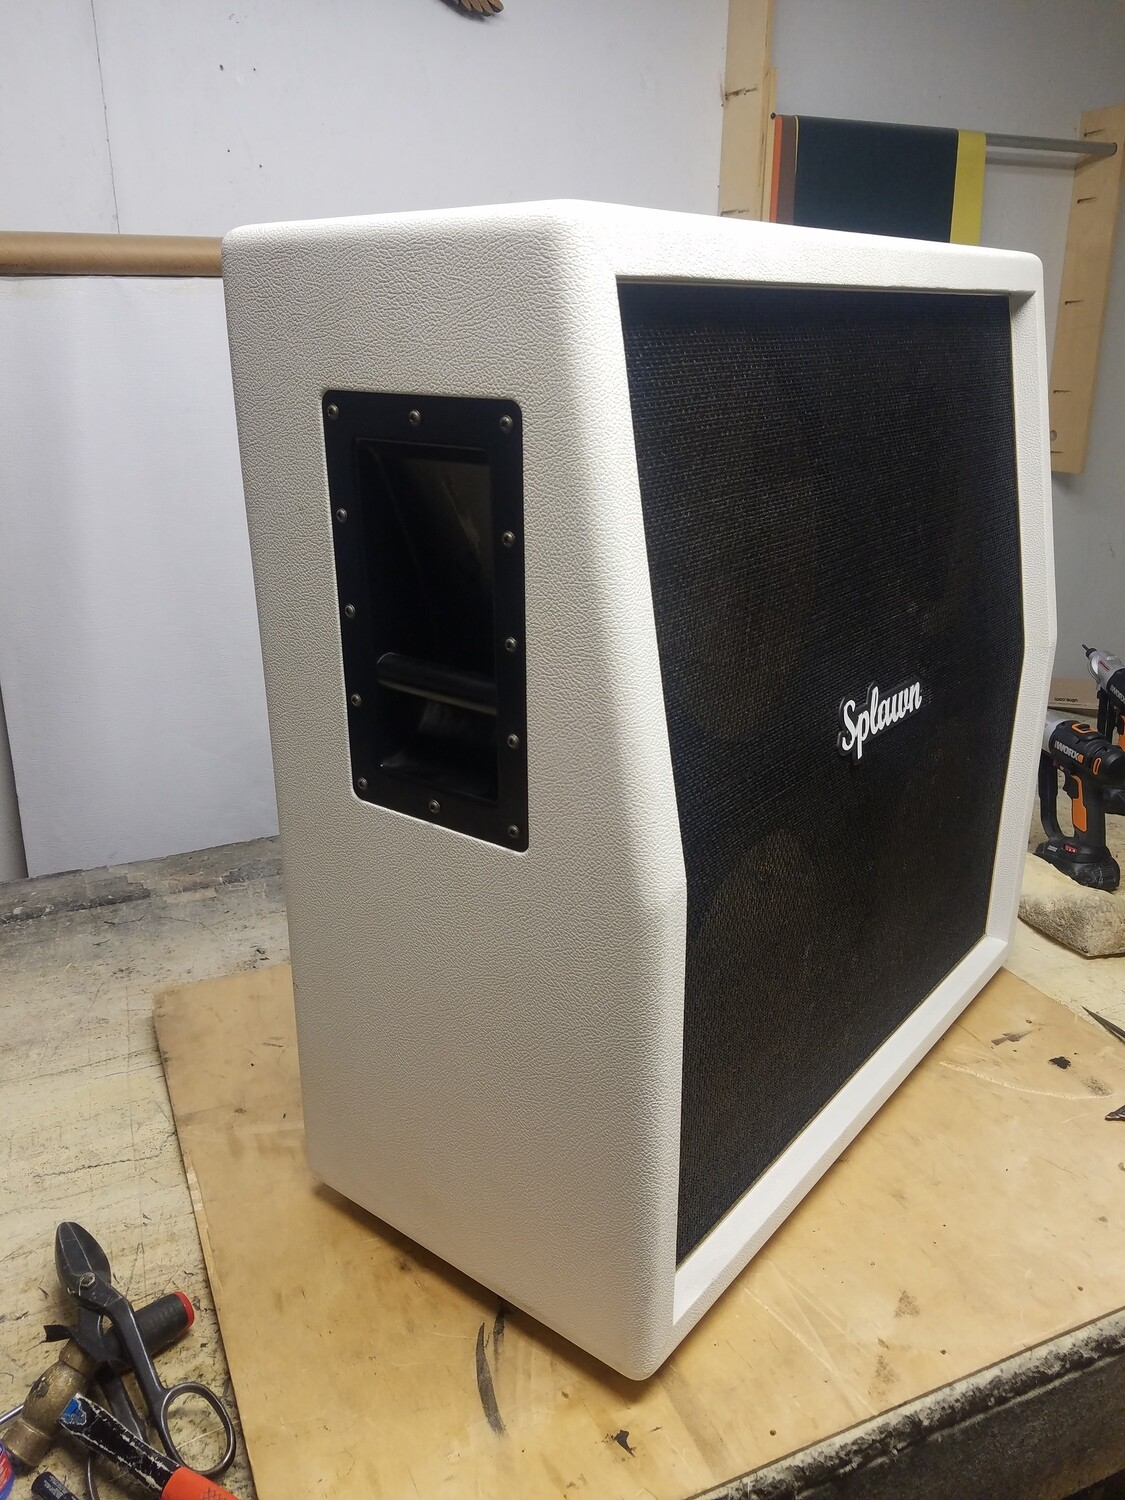 Splawn 4-12 Slant Speaker Cab Scratch and Dent $650.00 + Shipping